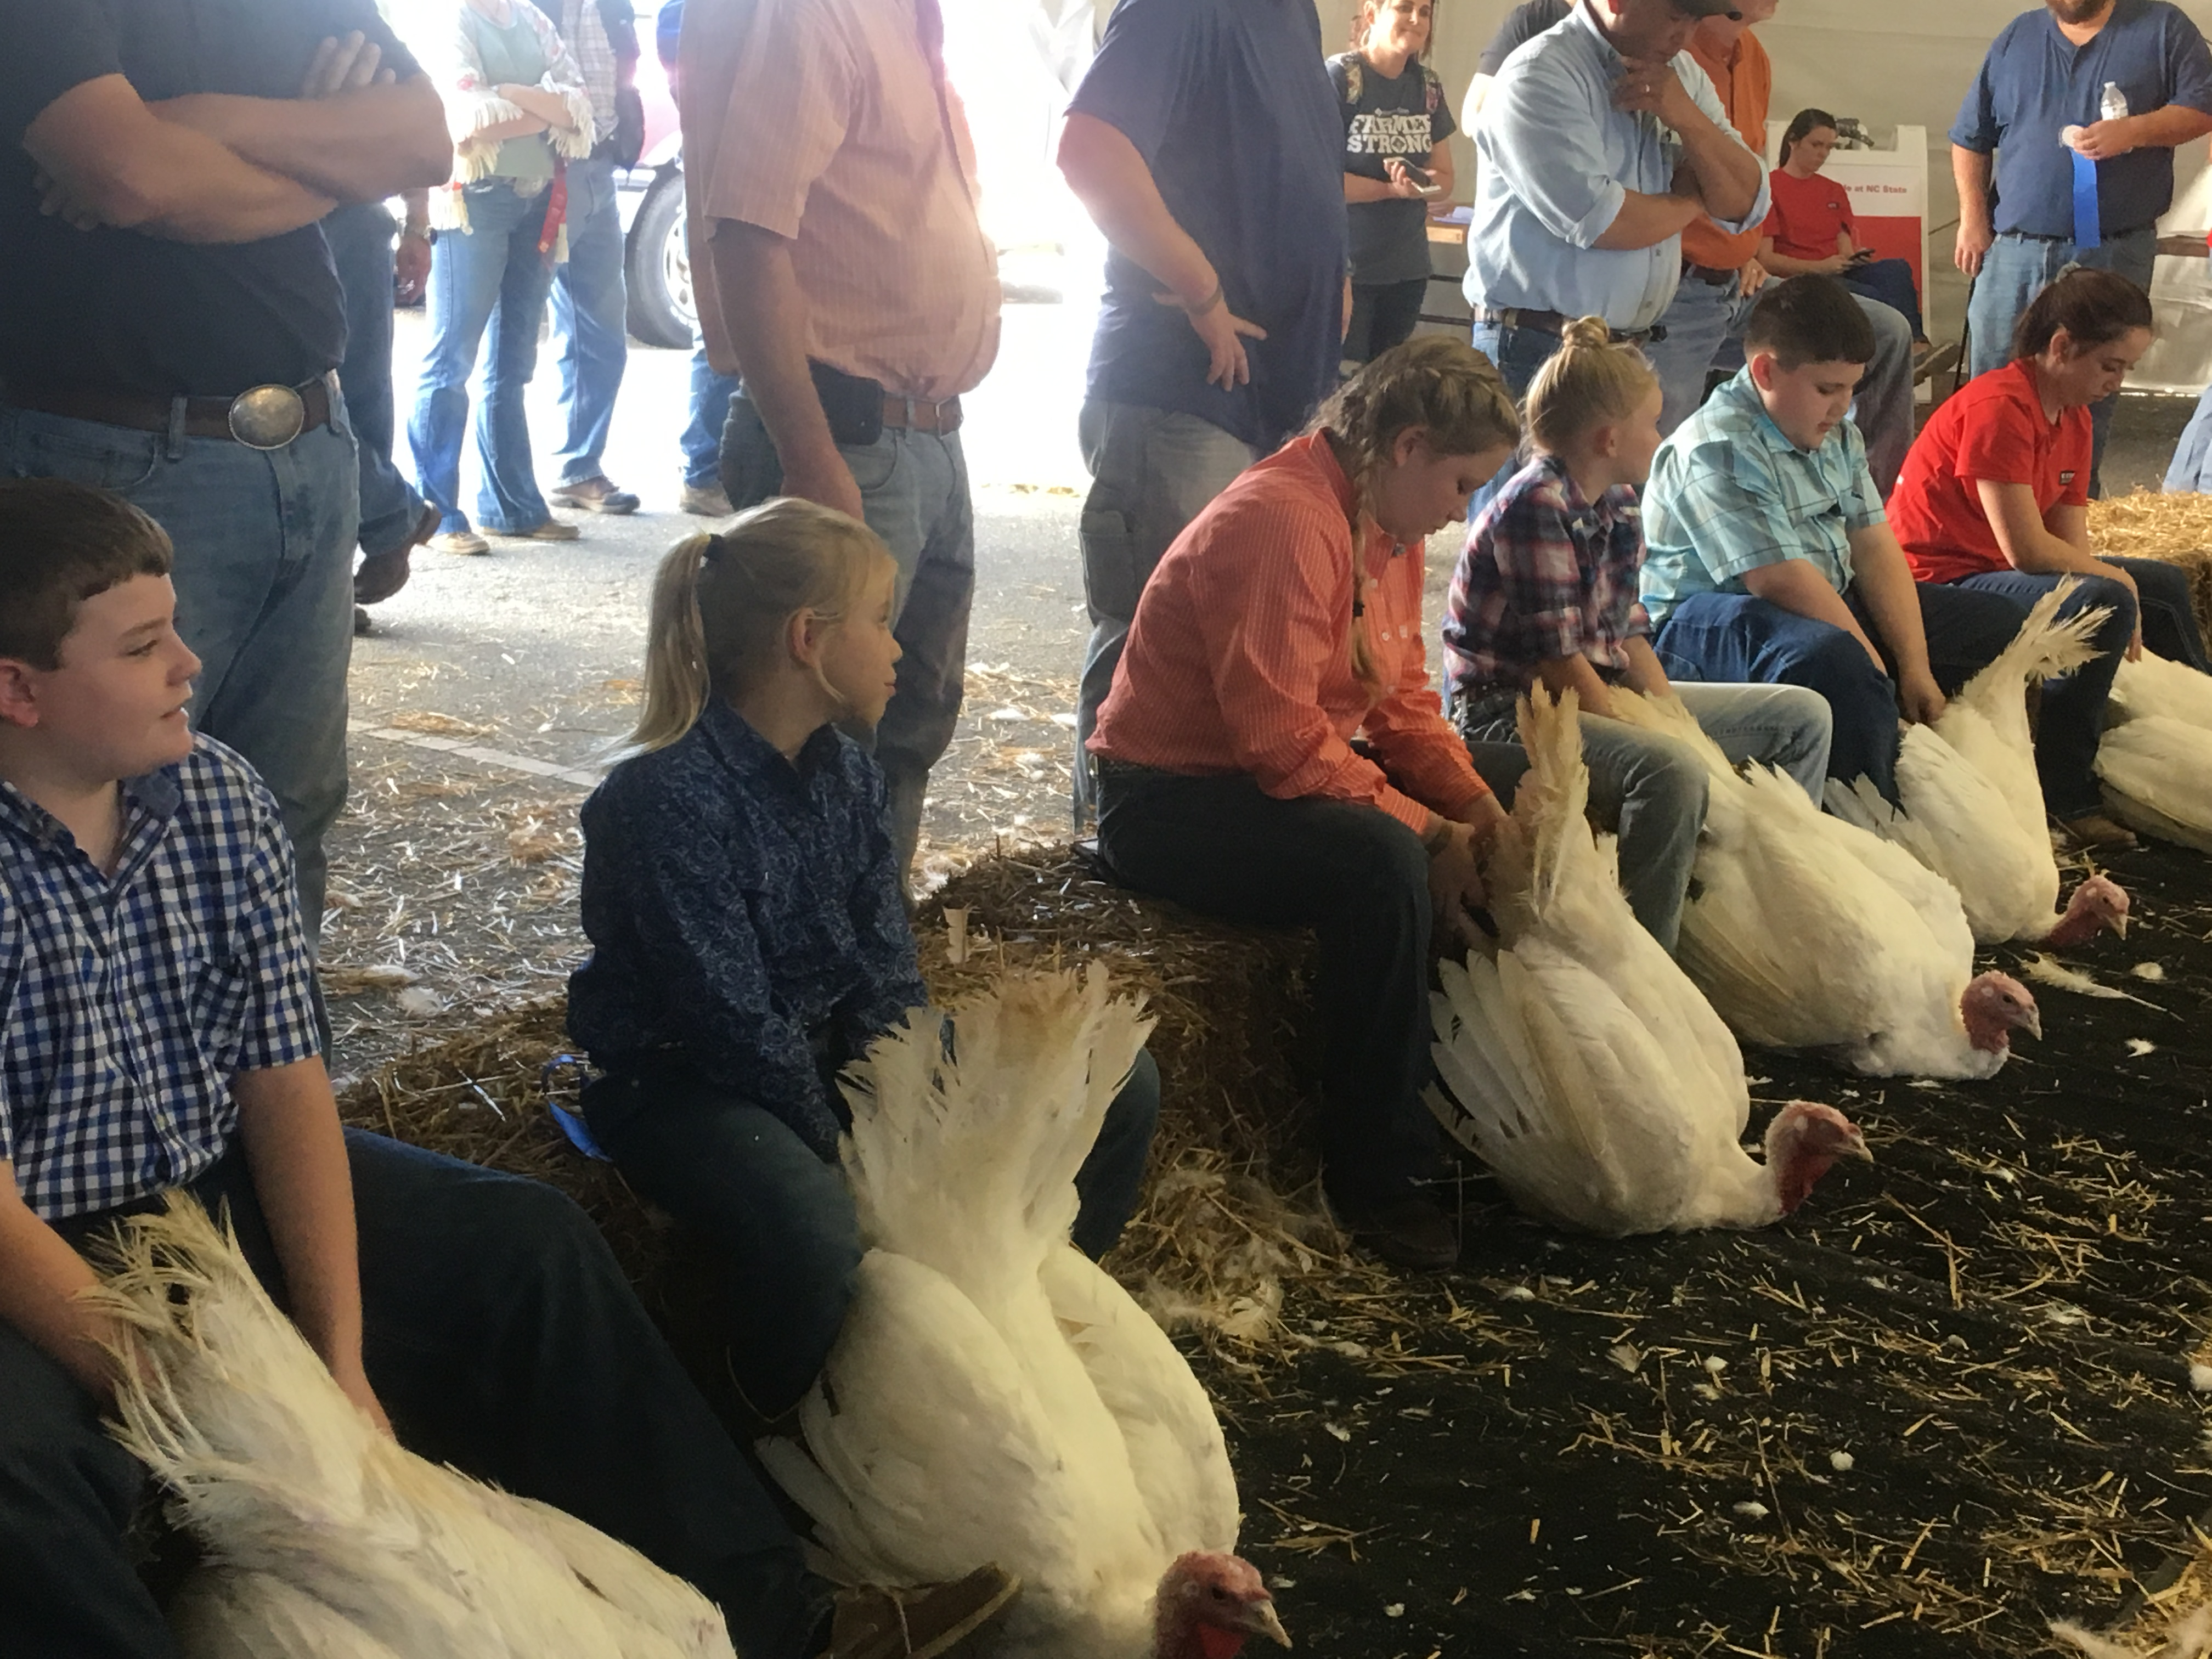 Youth lined up showing turkeys at state fair